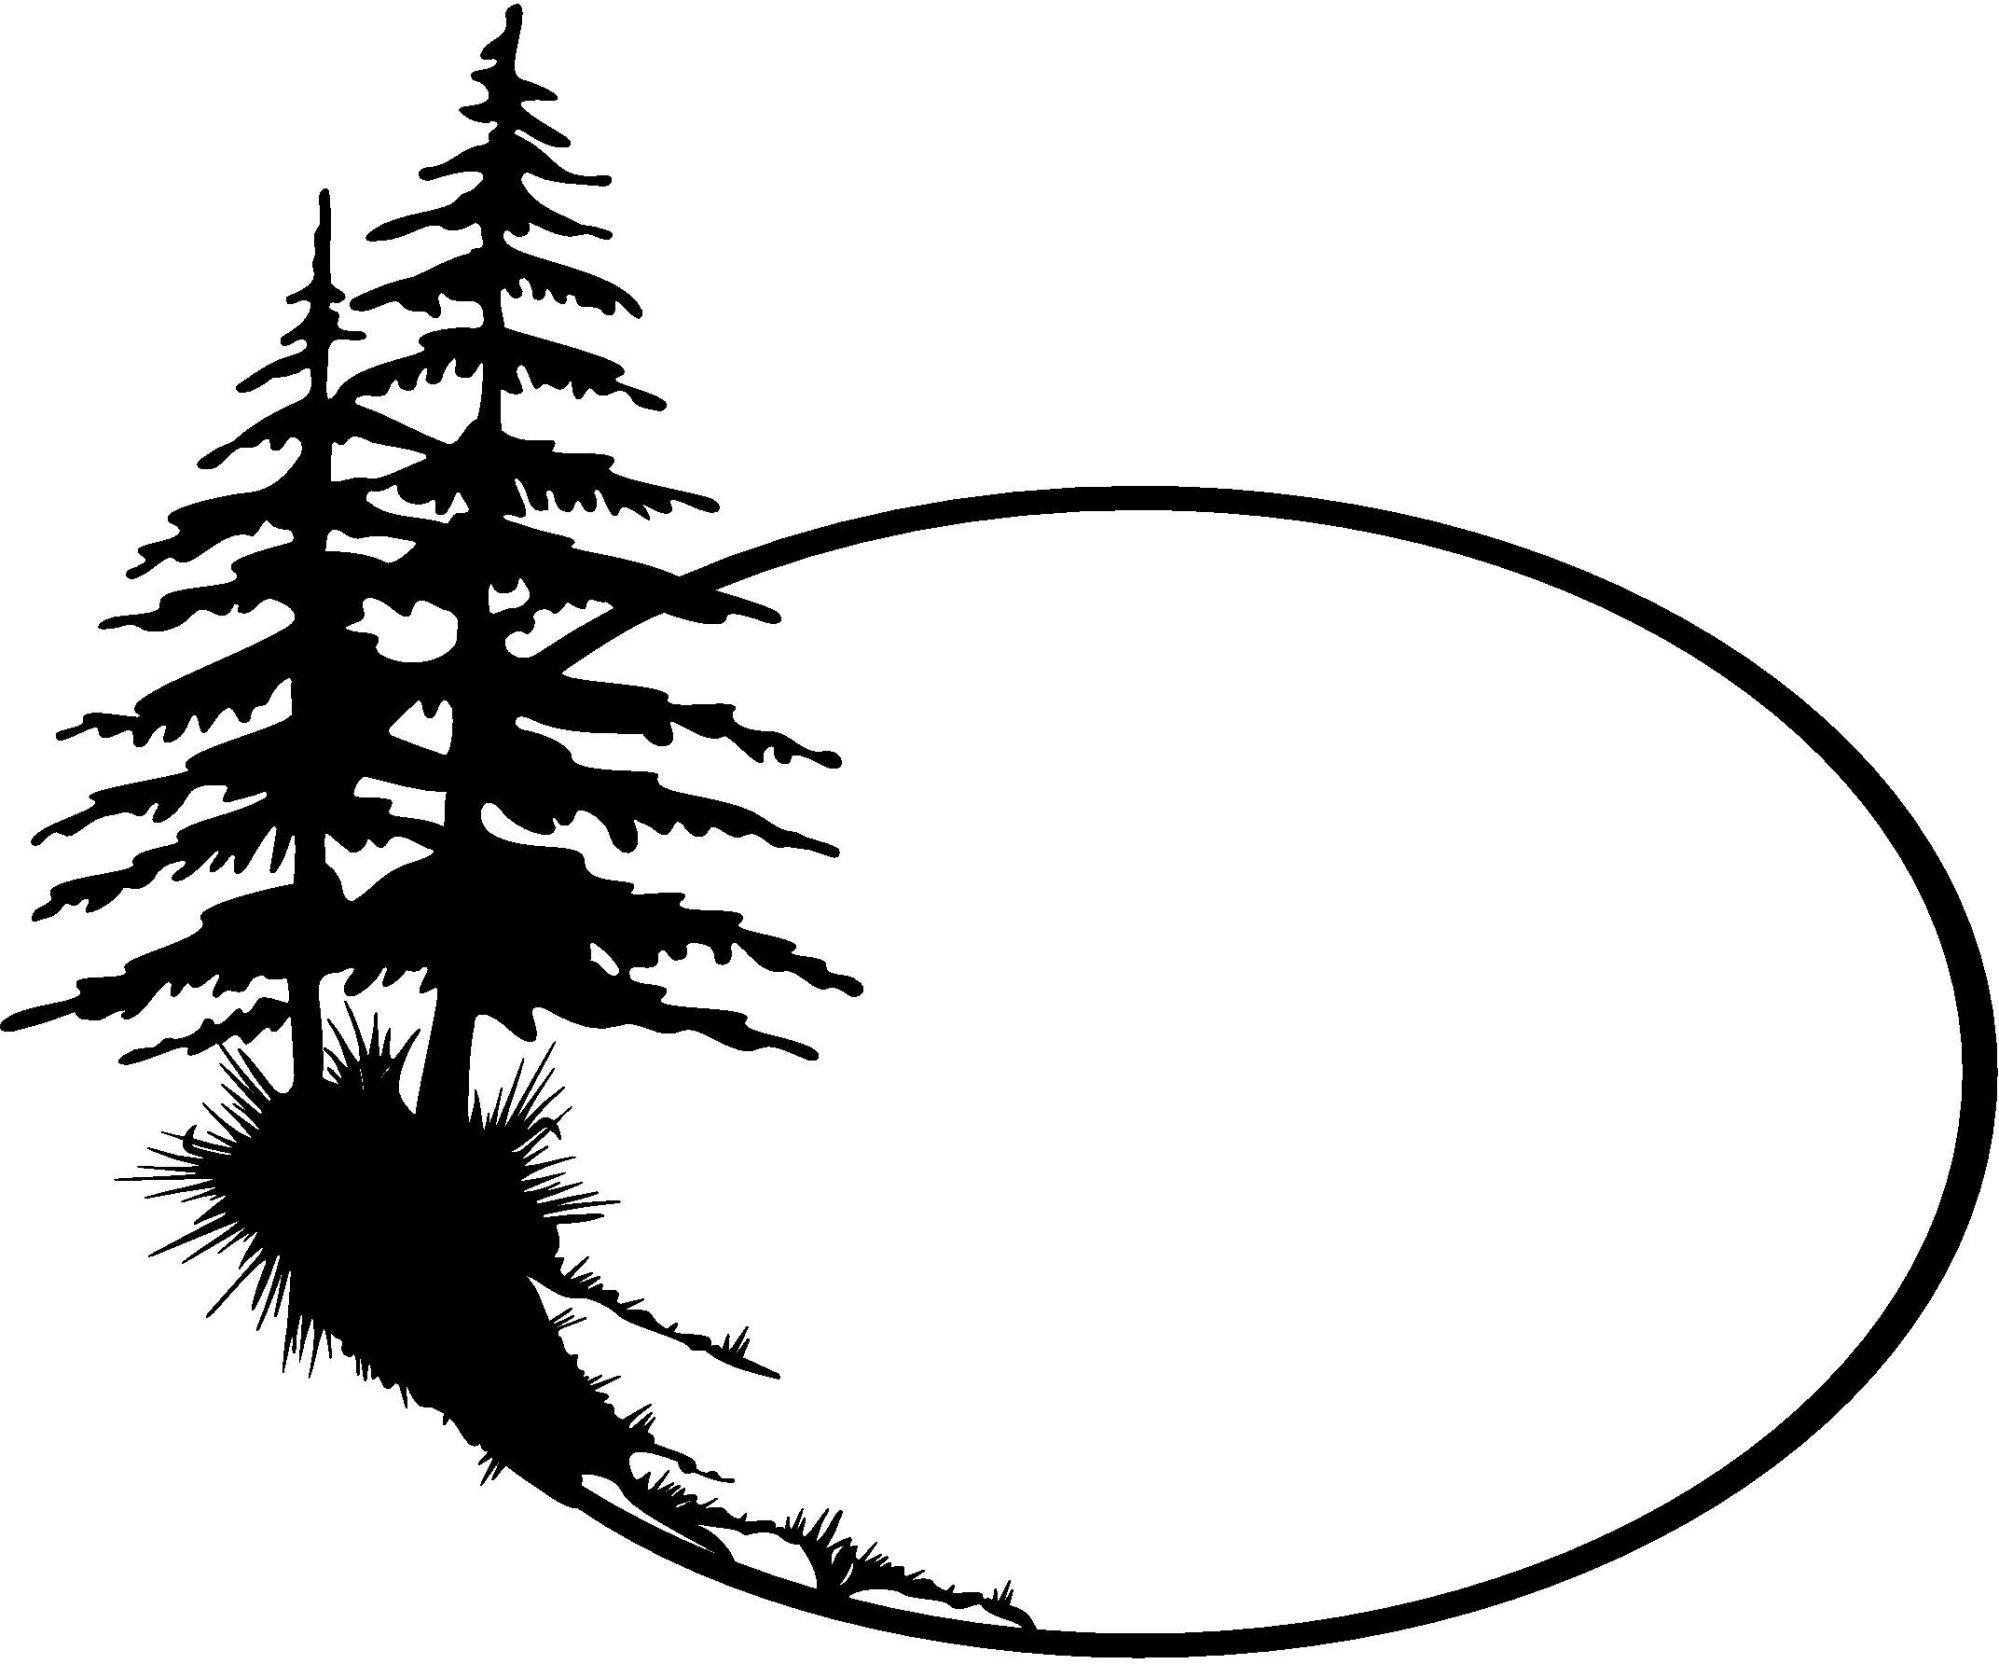 hight resolution of 2144x1784 forest clipart pine tree outline